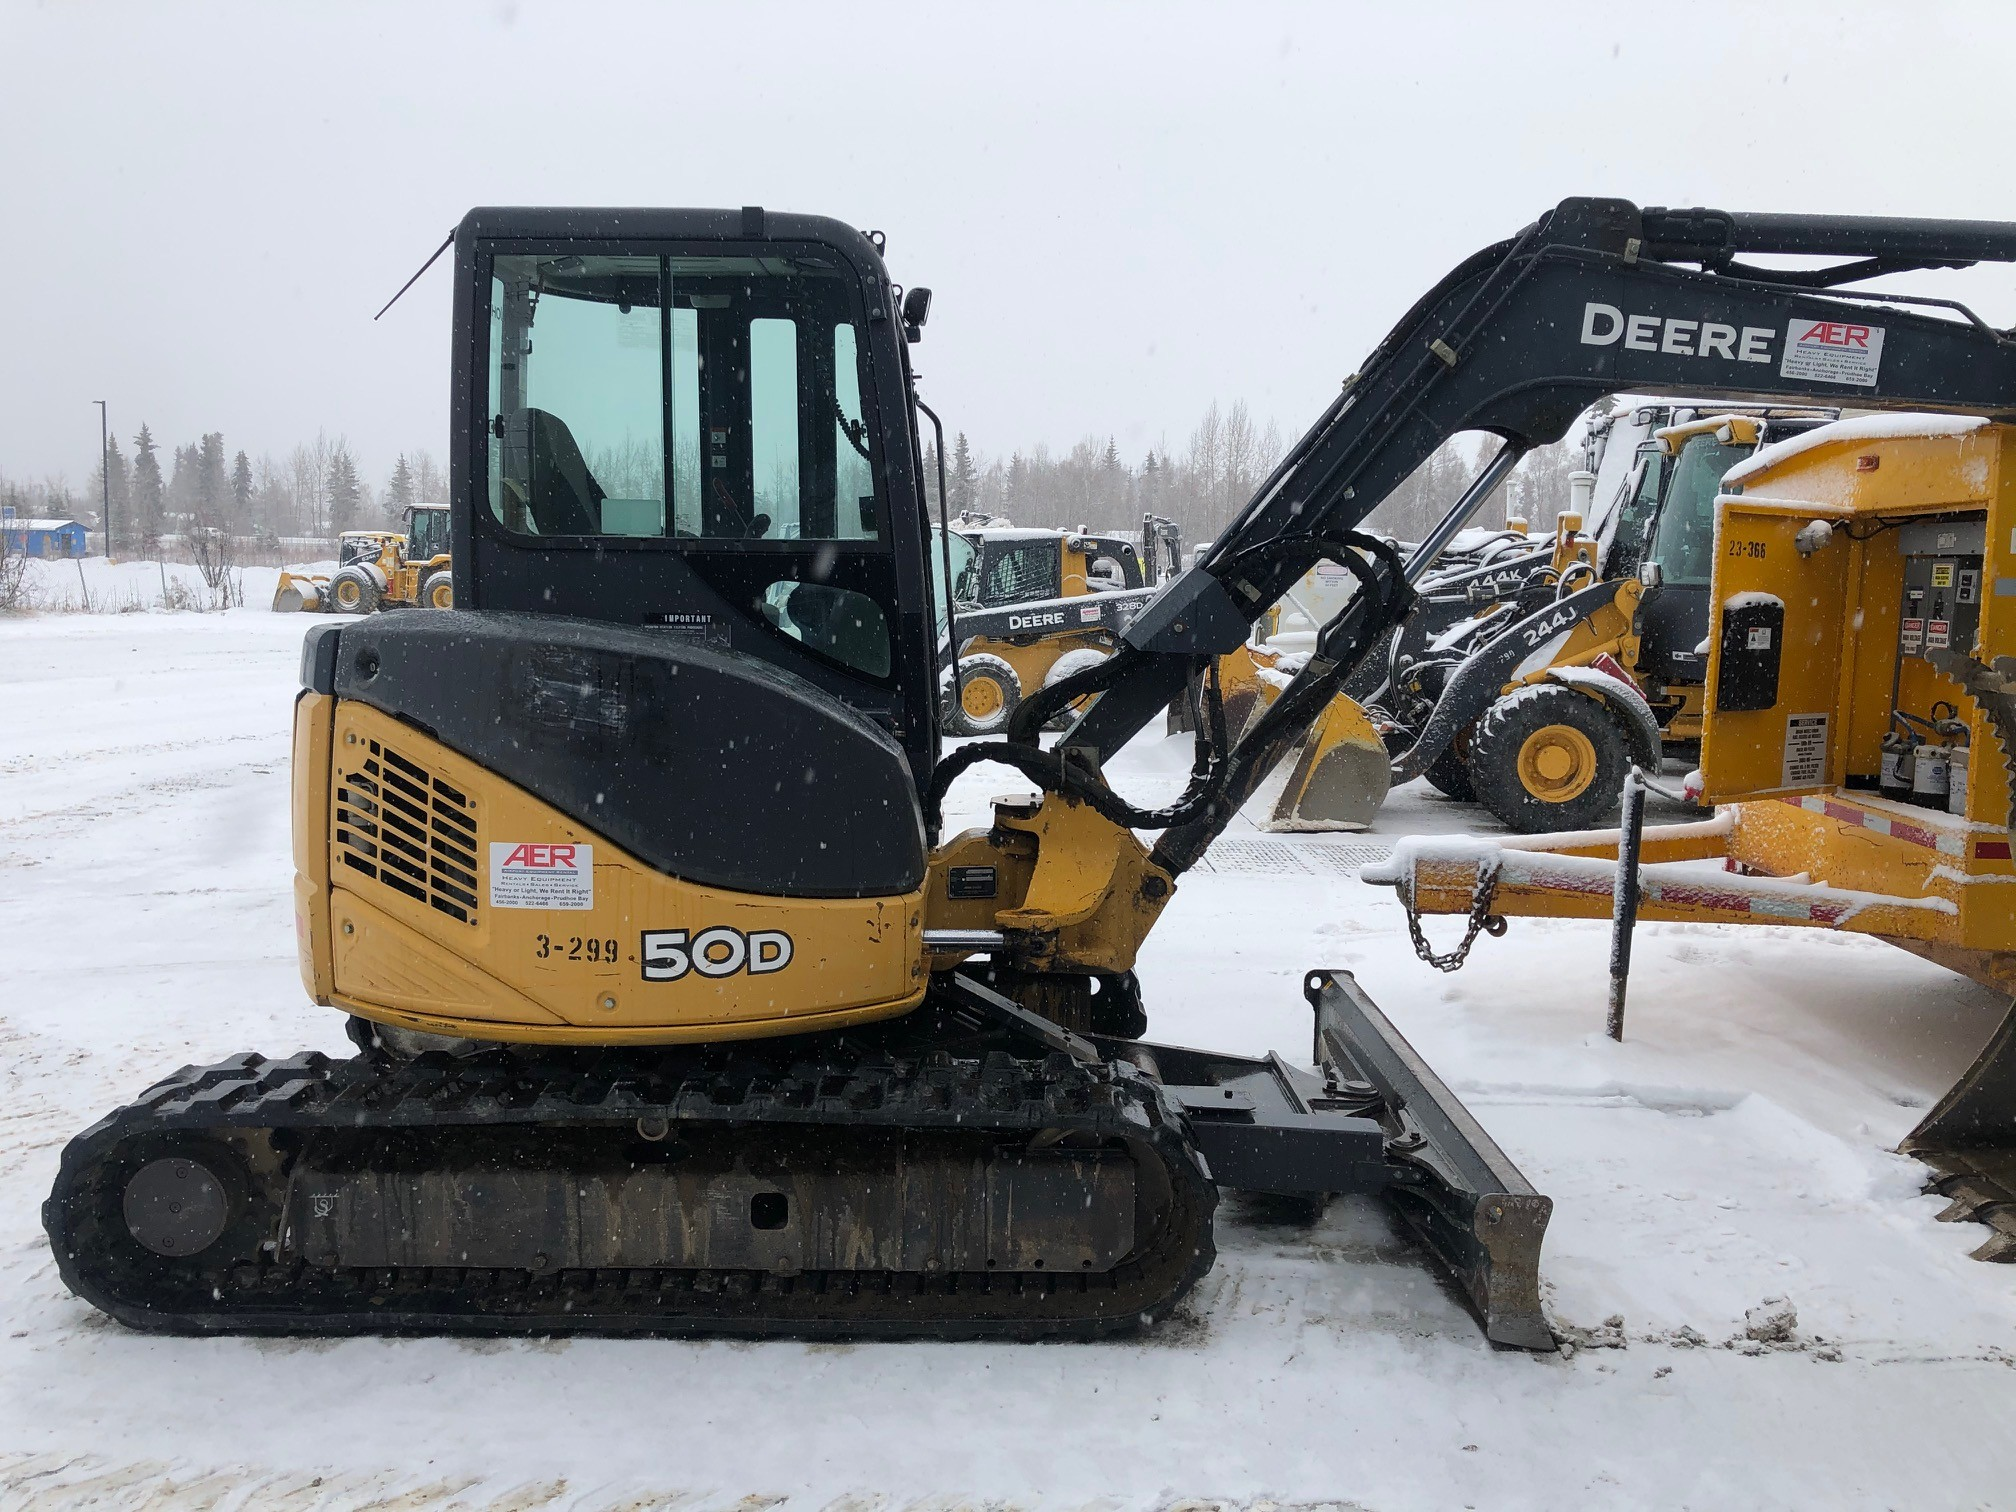 Used, 2010, John Deere Construction, 50D, Excavators